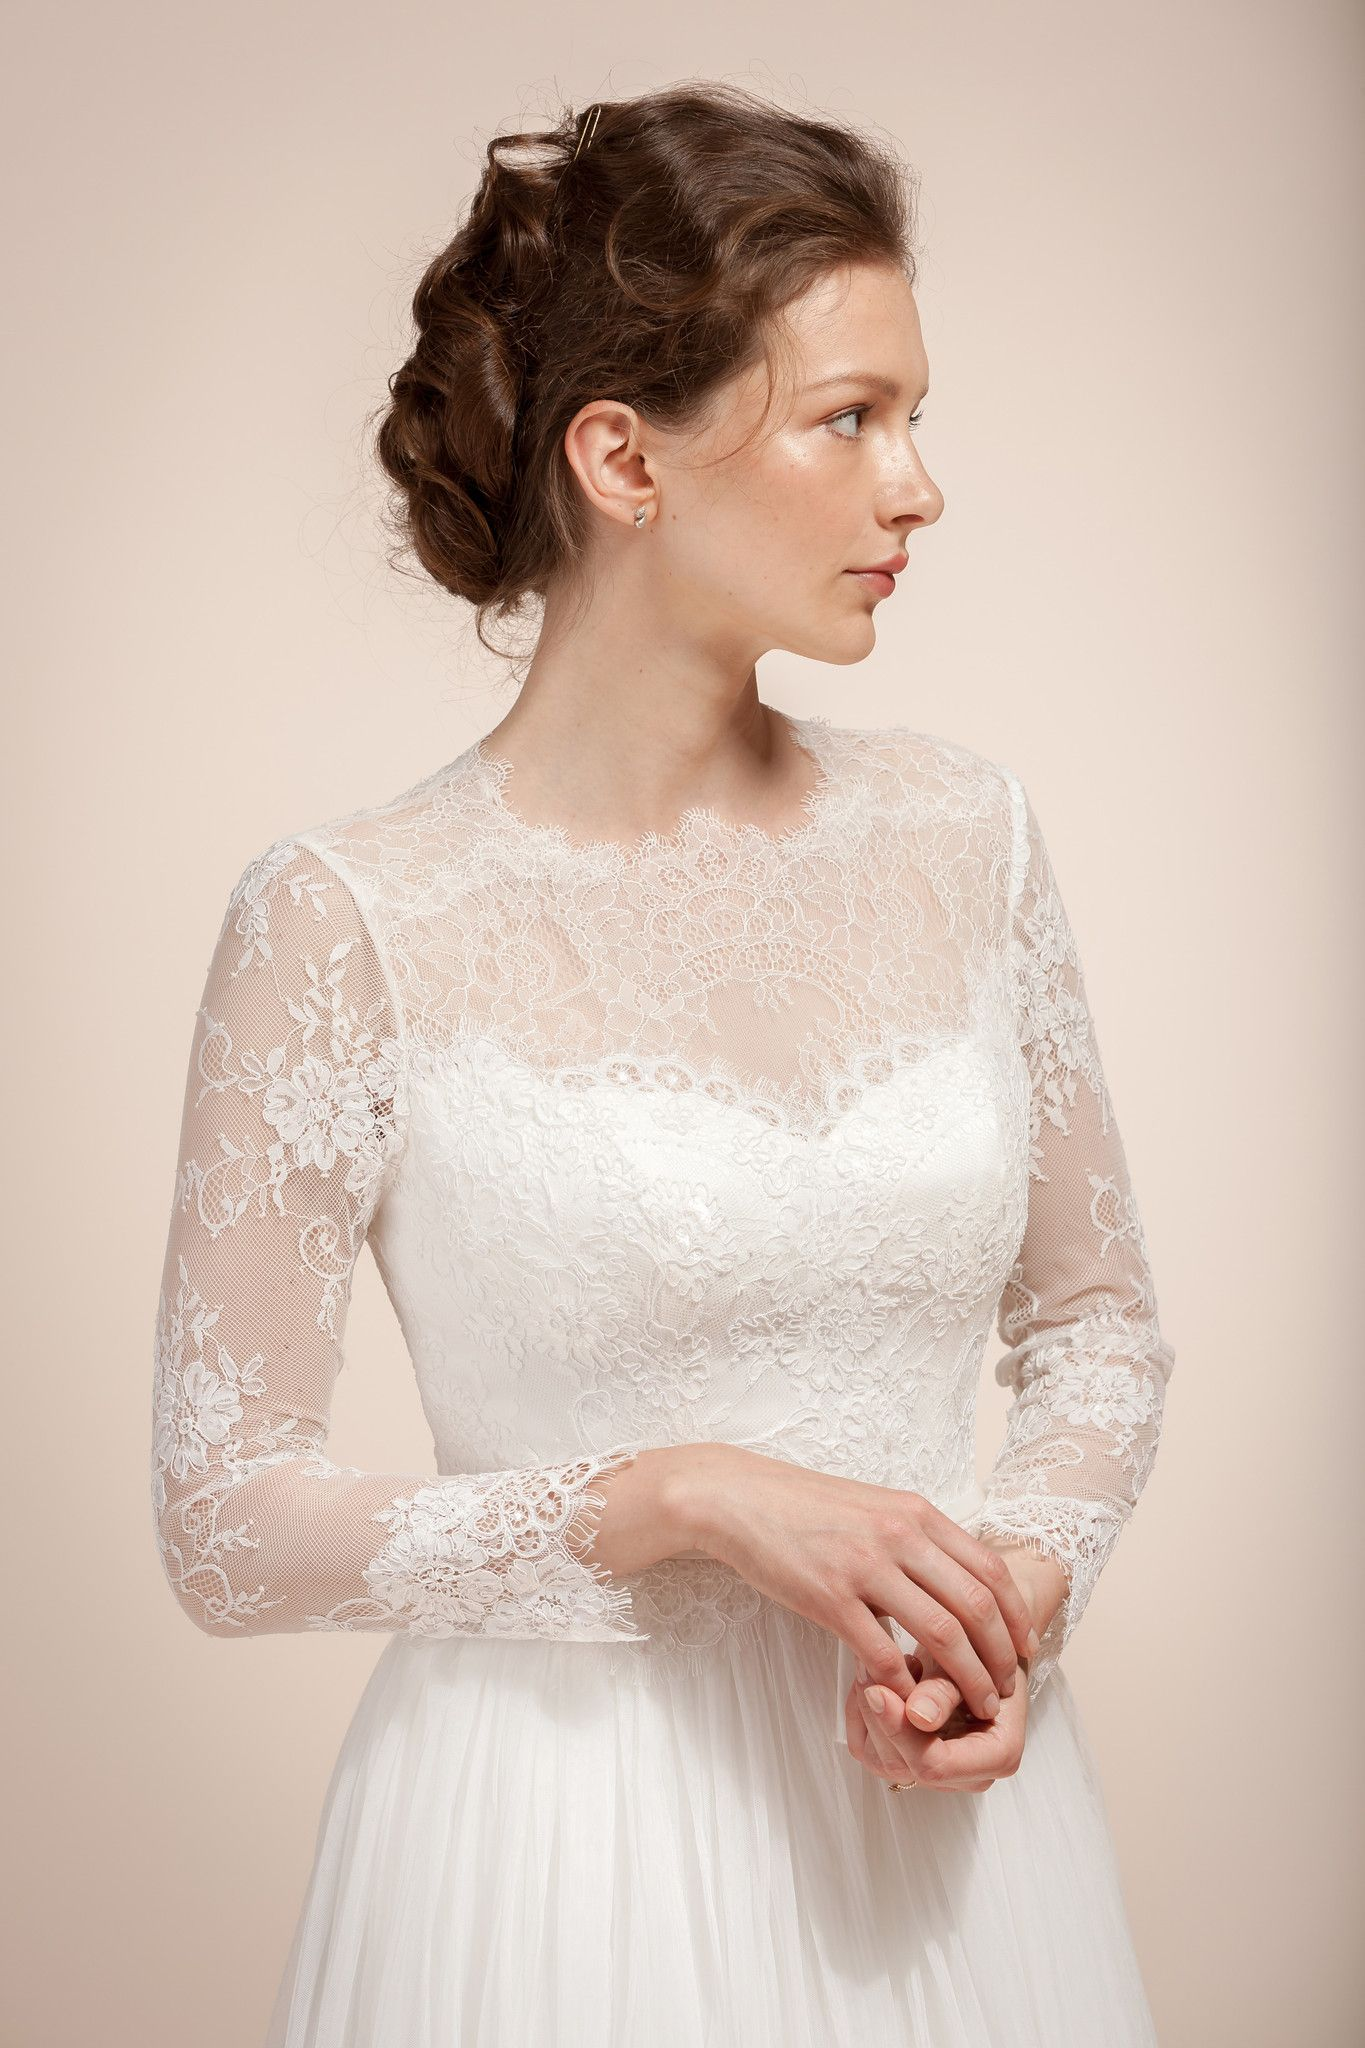 Lace wedding dress, Bridal dress with Chantilly lace sleeves ...